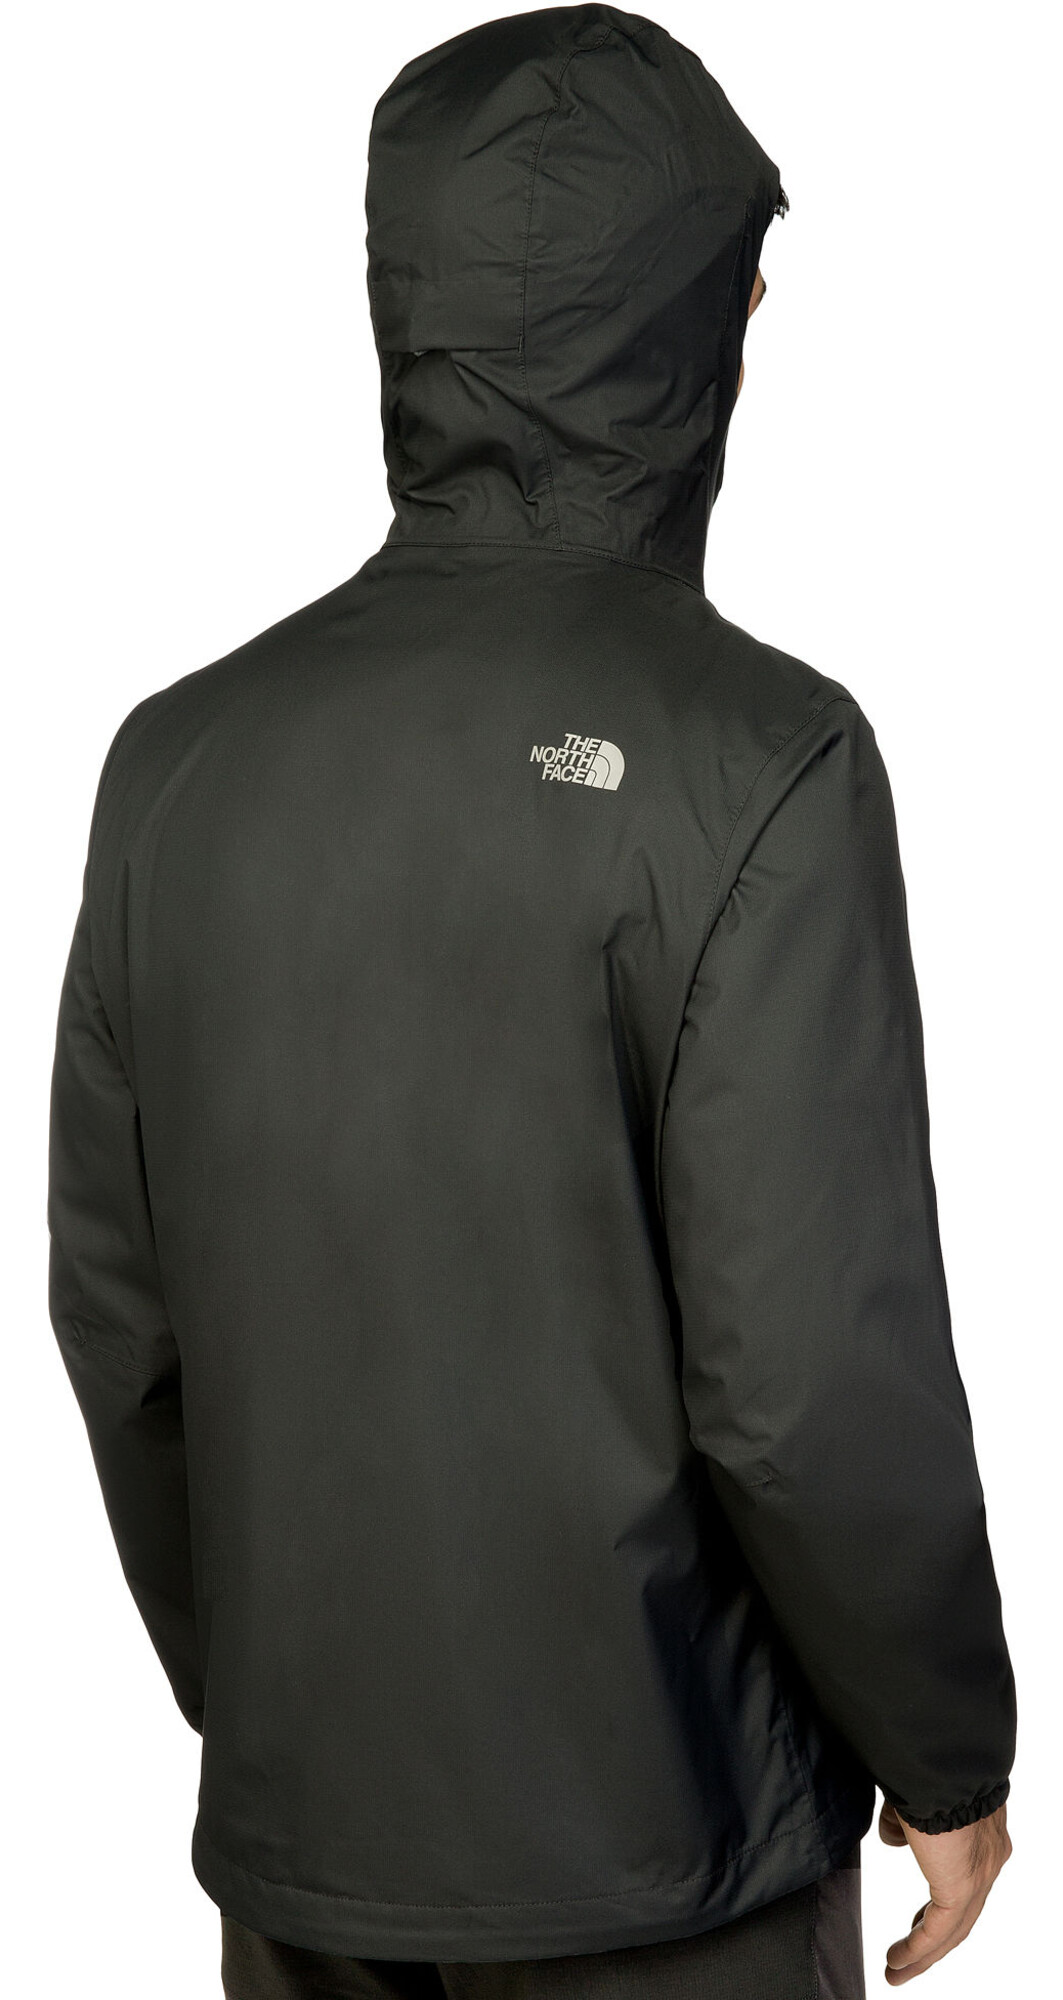 c3d760e8293e The North Face Quest - Veste imperméable homme - noir sur CAMPZ !